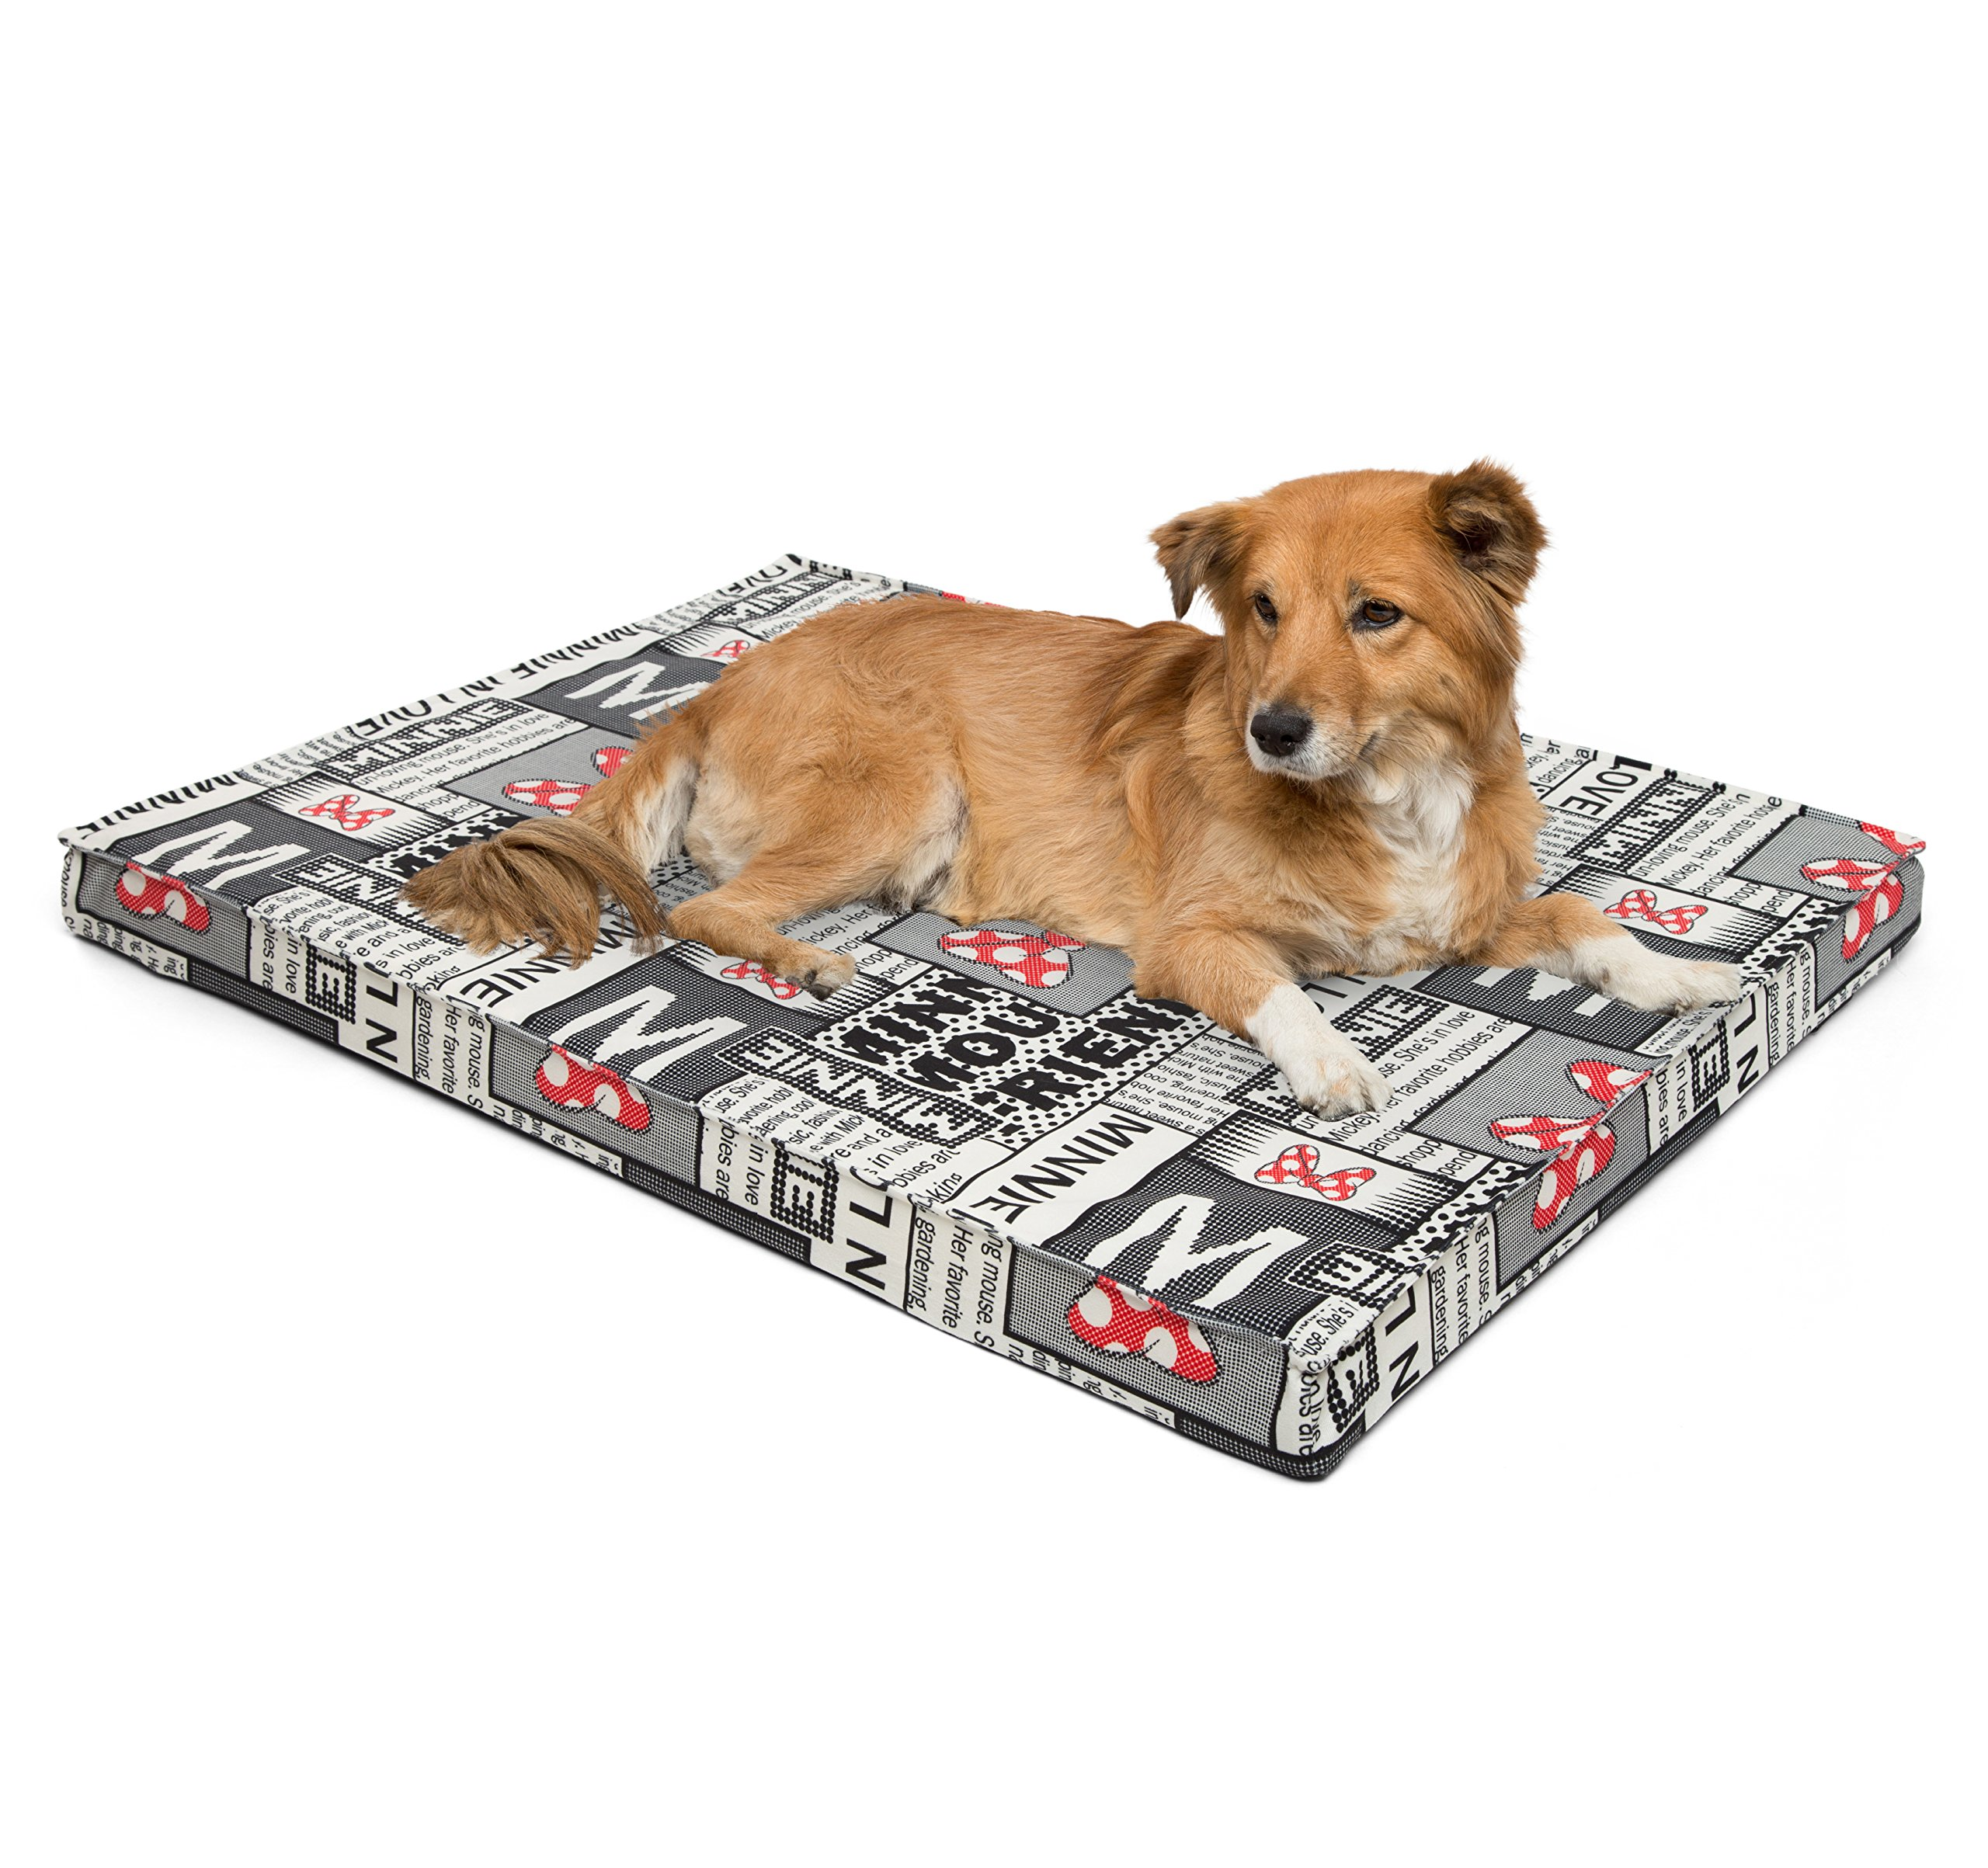 Disney Joint Relief Nap Mat in Minnie Newspaper, Black, 2.5'' (Dog/Cat Bed)